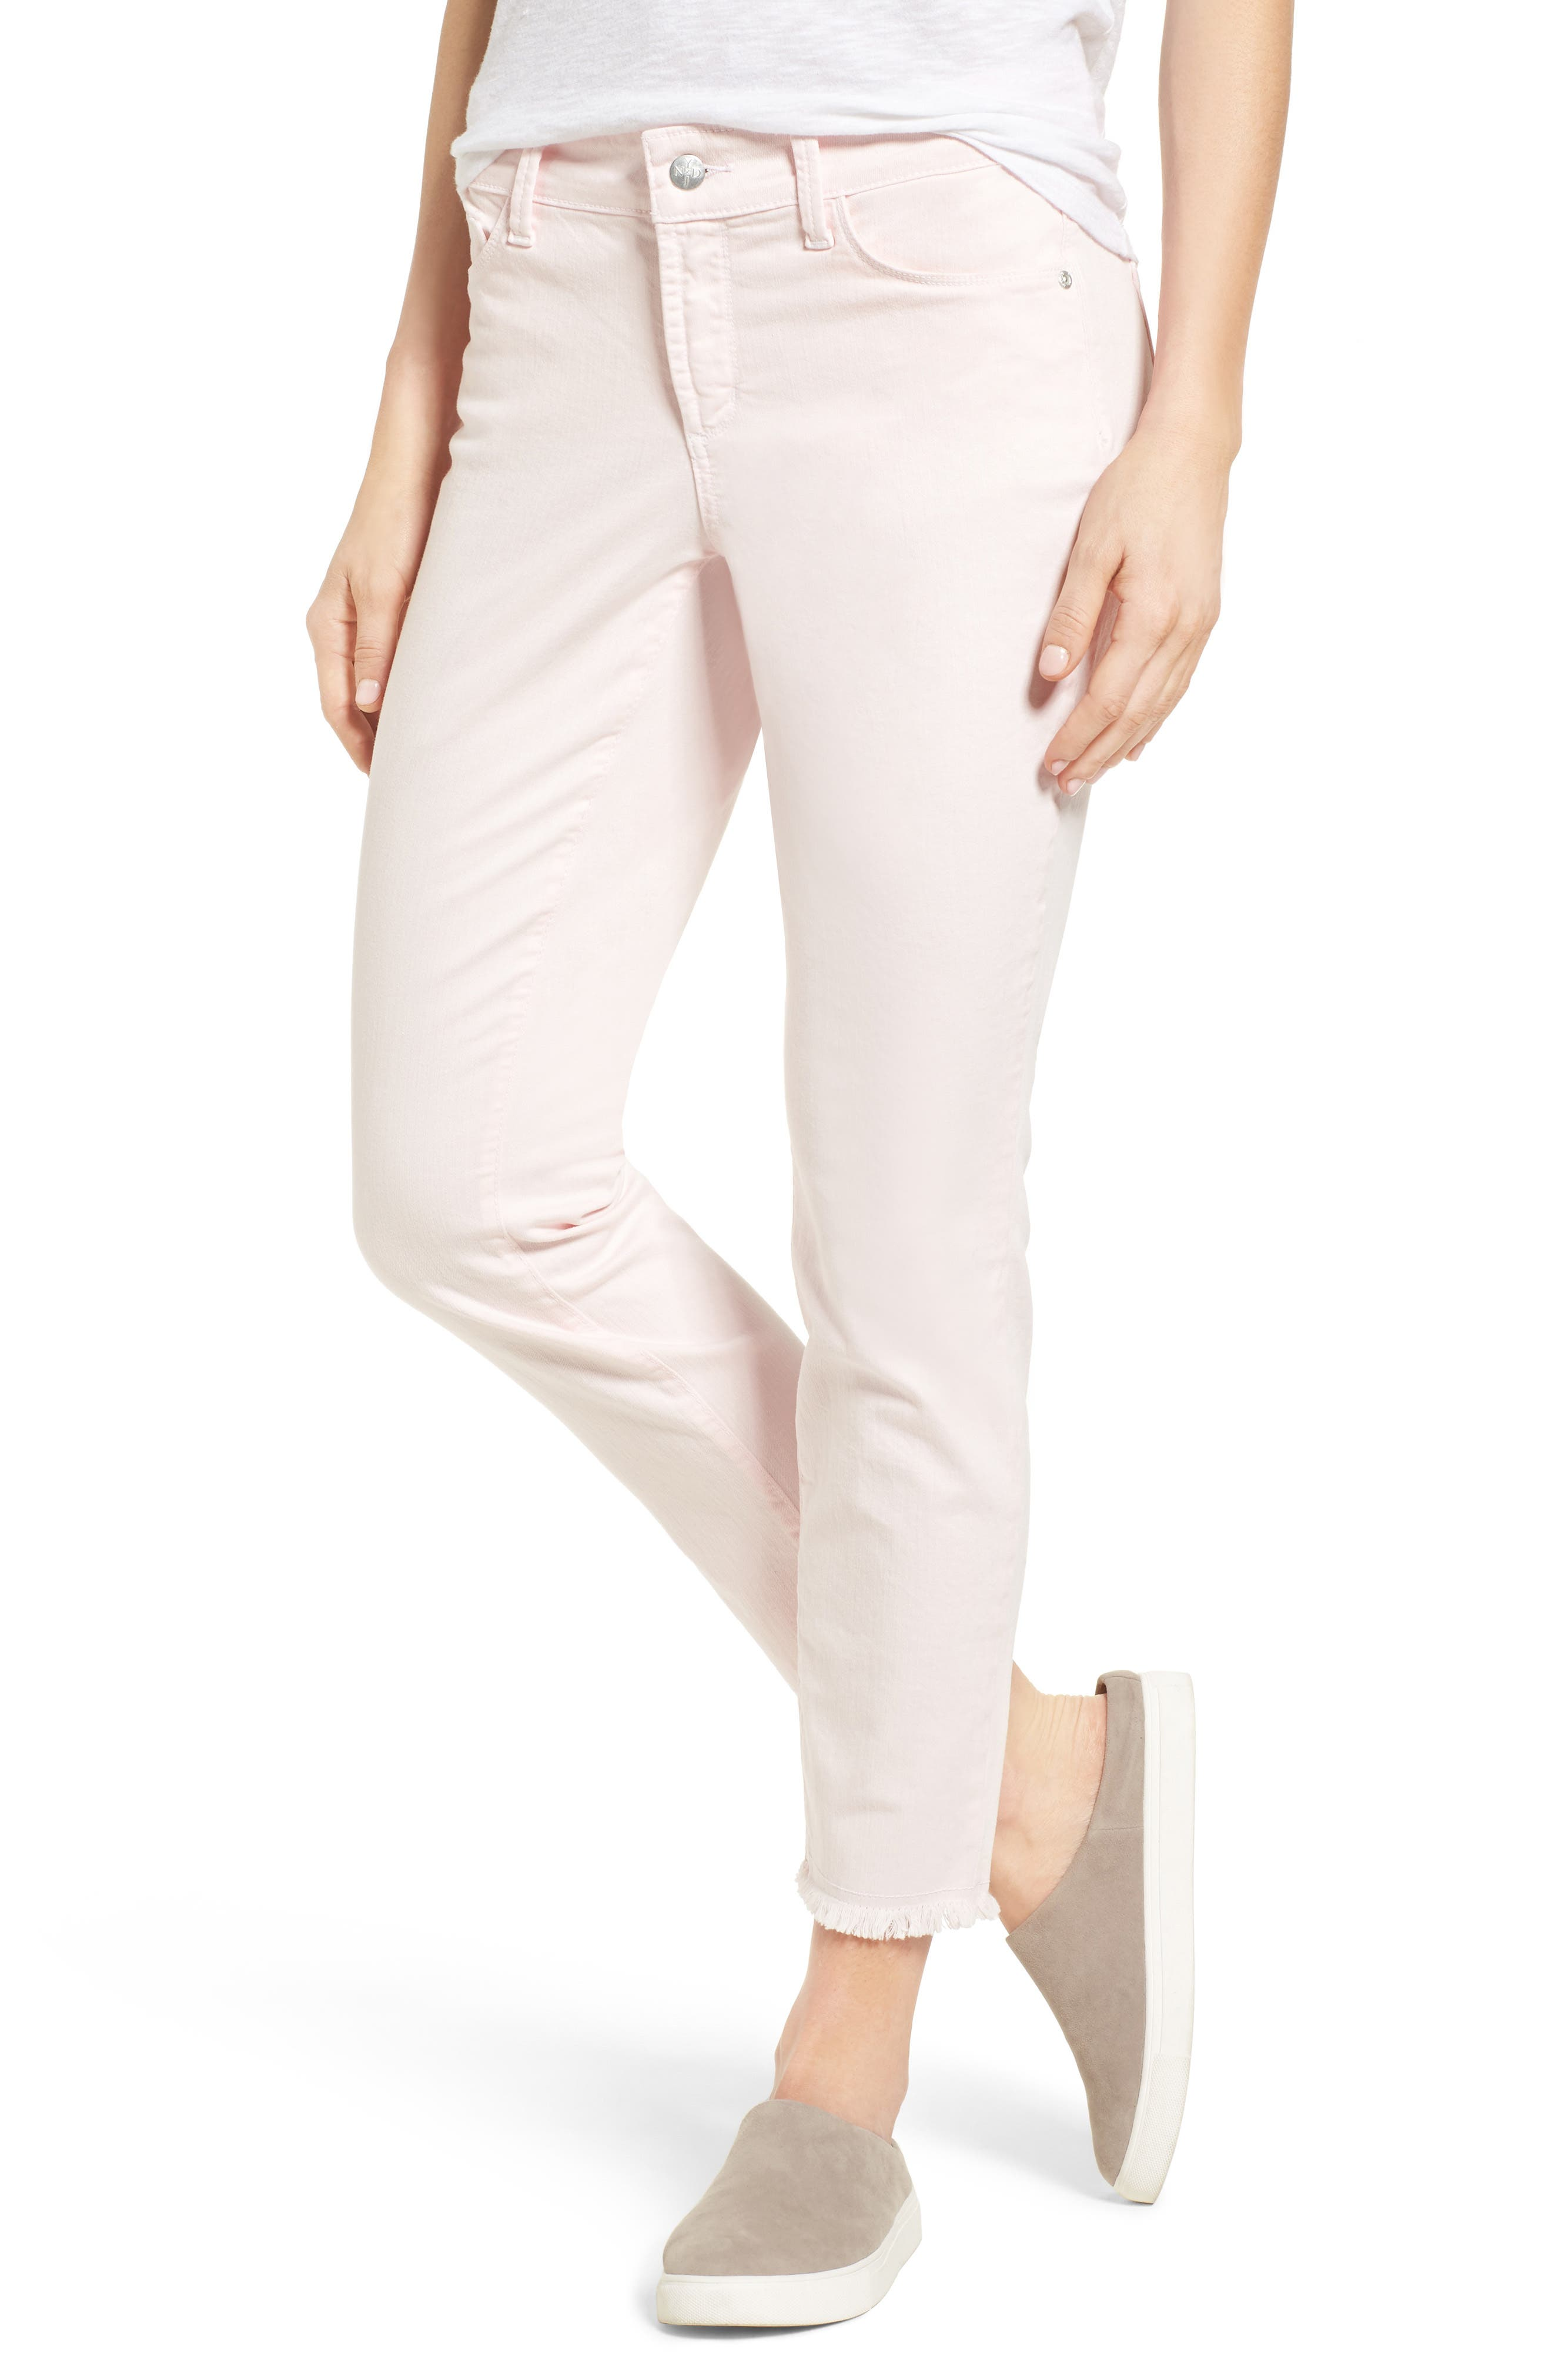 Alternate Image 1 Selected - NYDJ Alina Frayed Stretch Twill Ankle Pants (Regular & Petite)